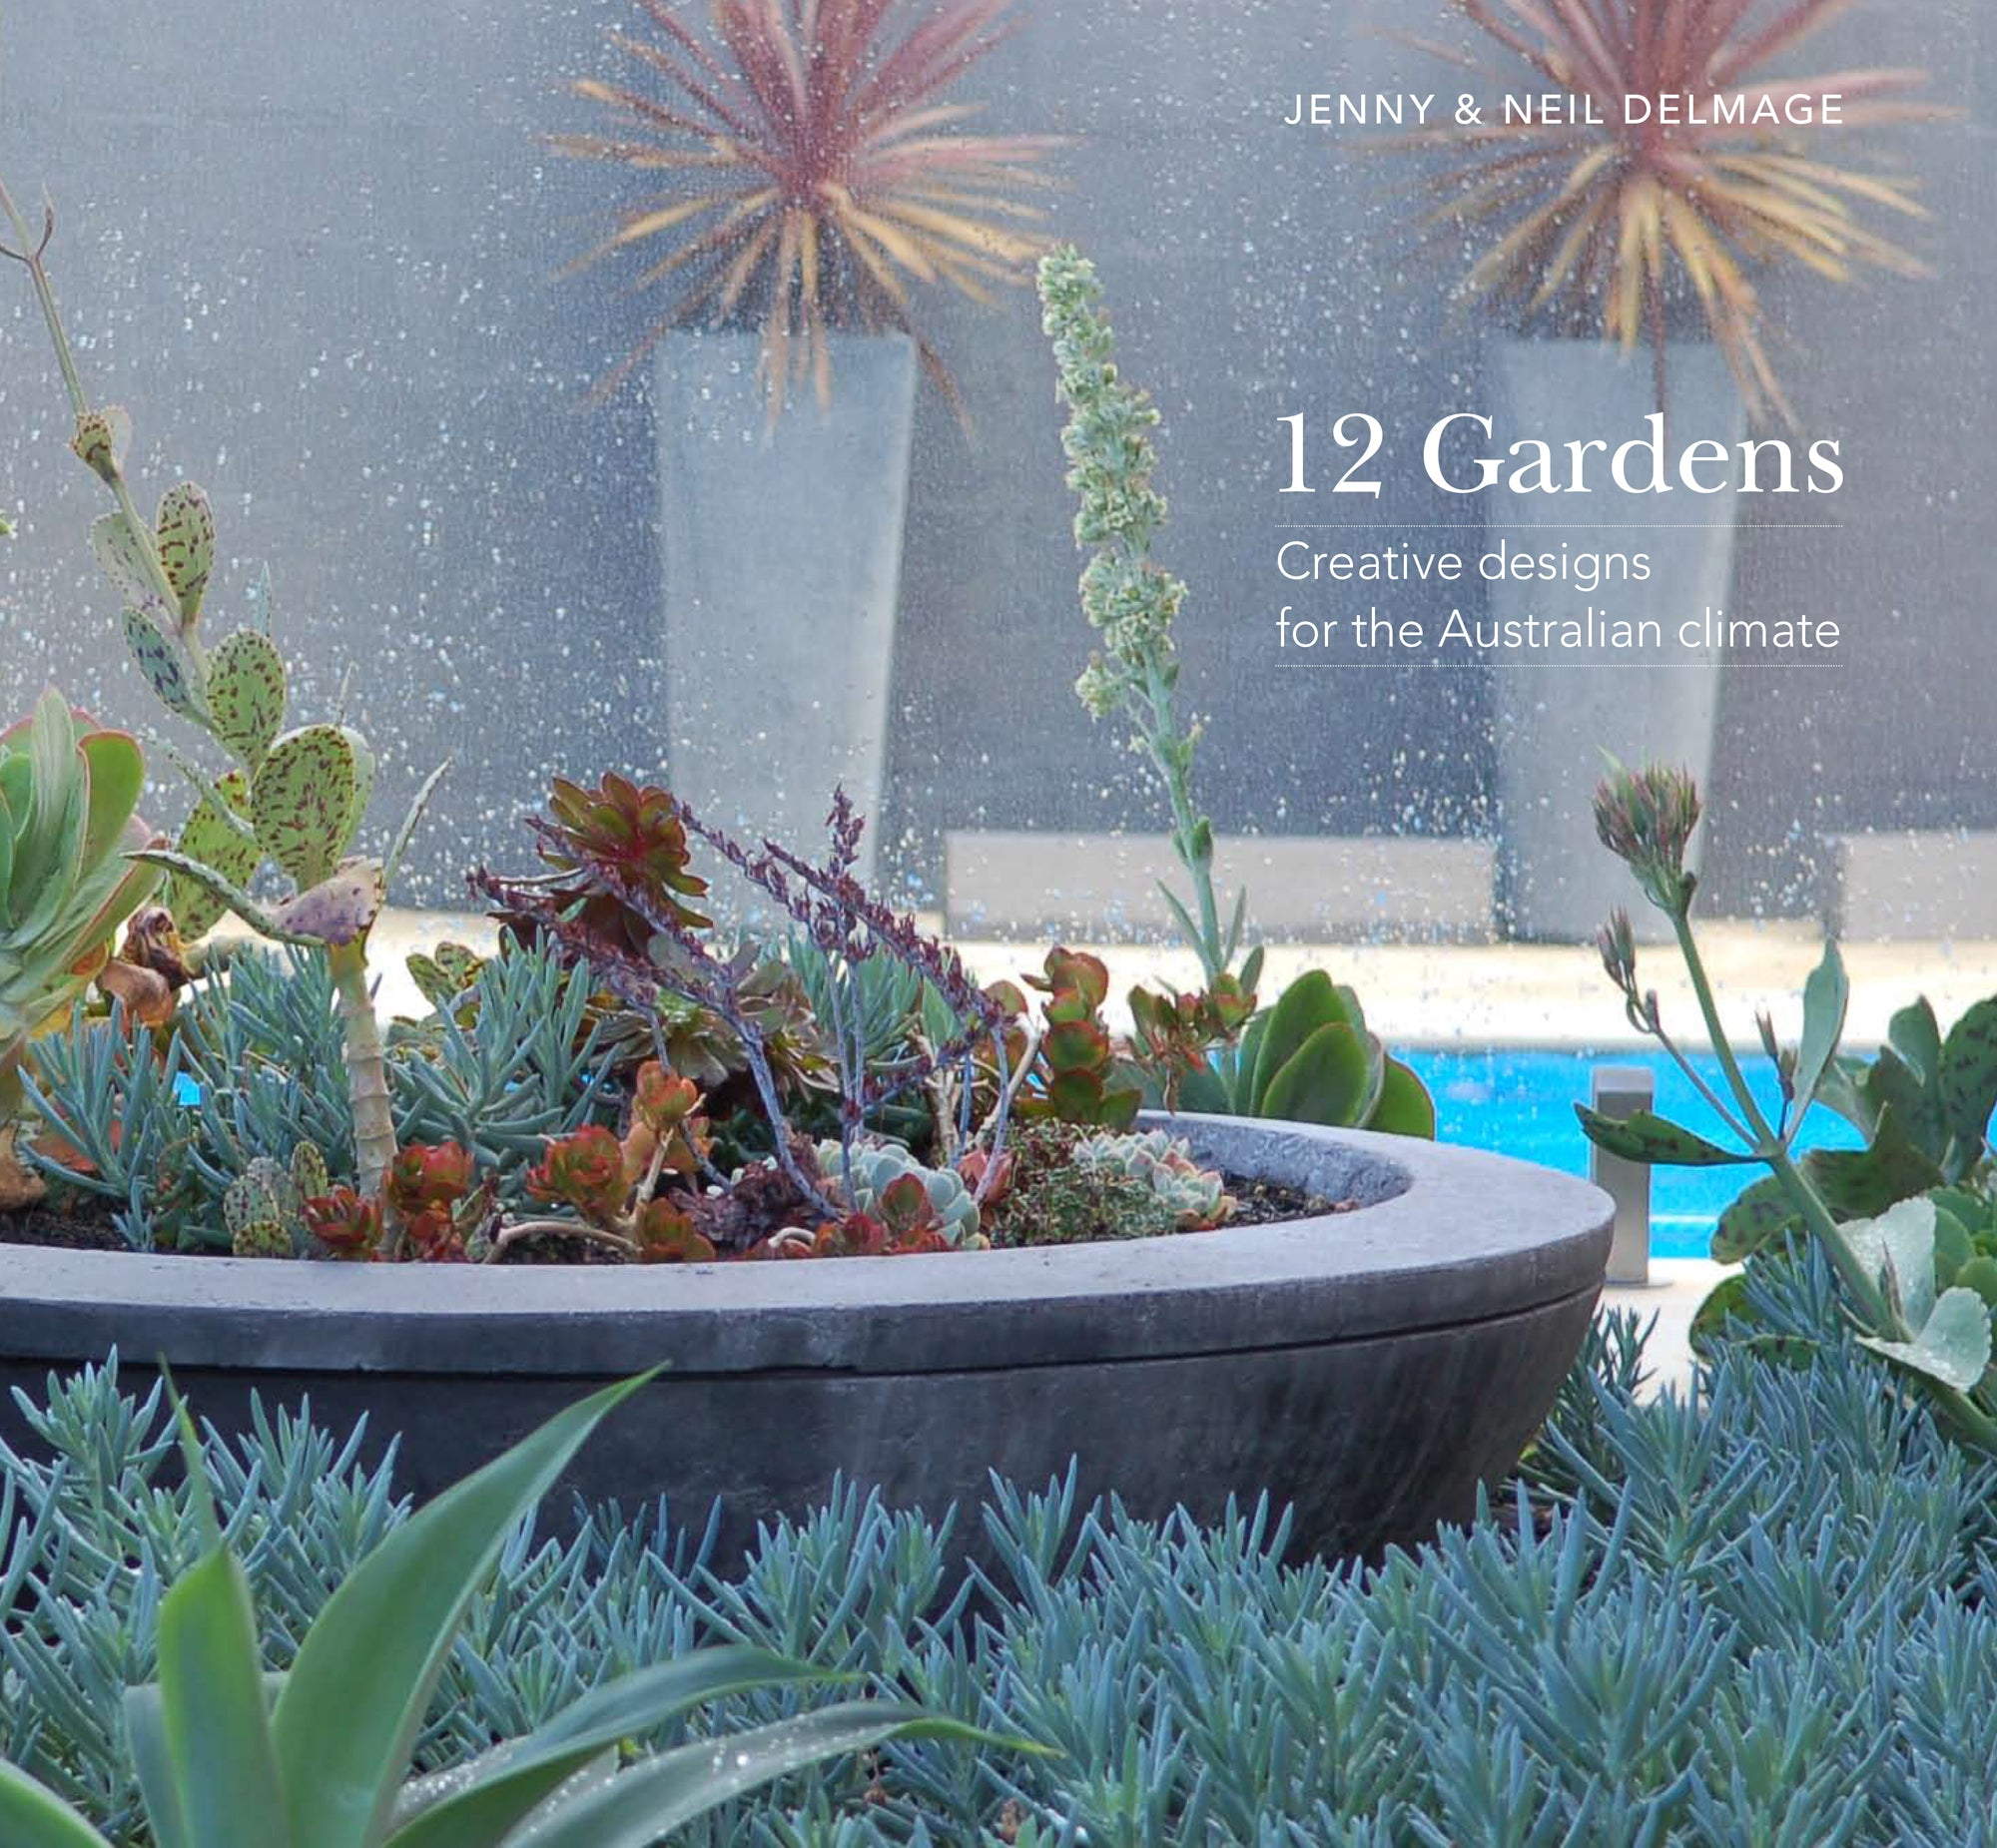 12 Gardens Creative designs for the Australian climate UWA